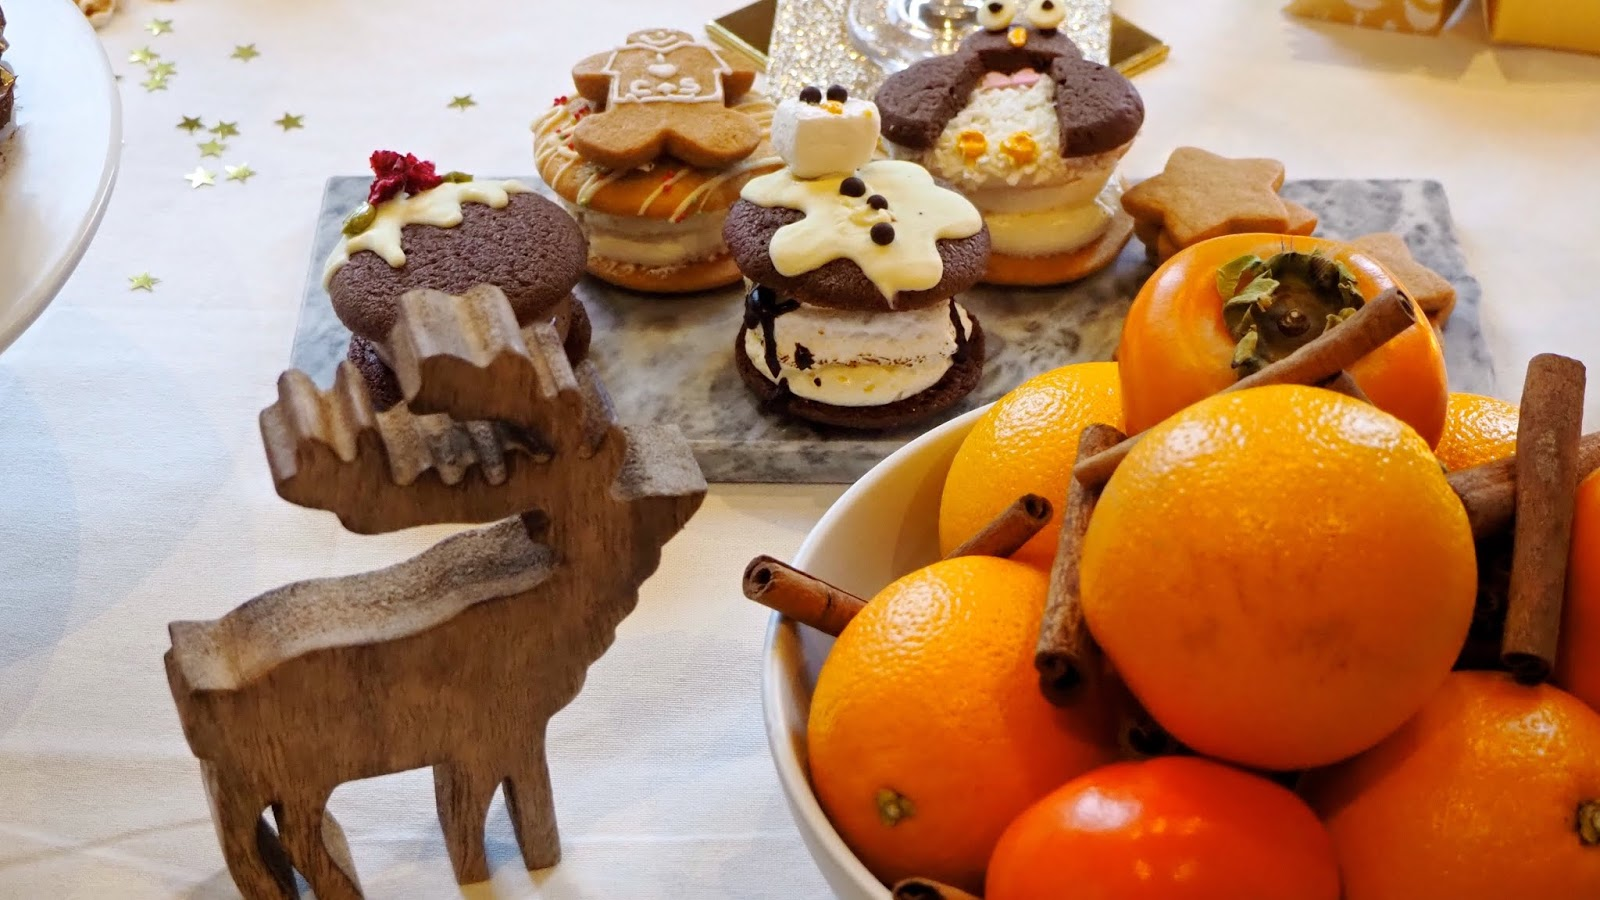 wooden reindeer, christmas whoopie pies, oranges and cinnamon